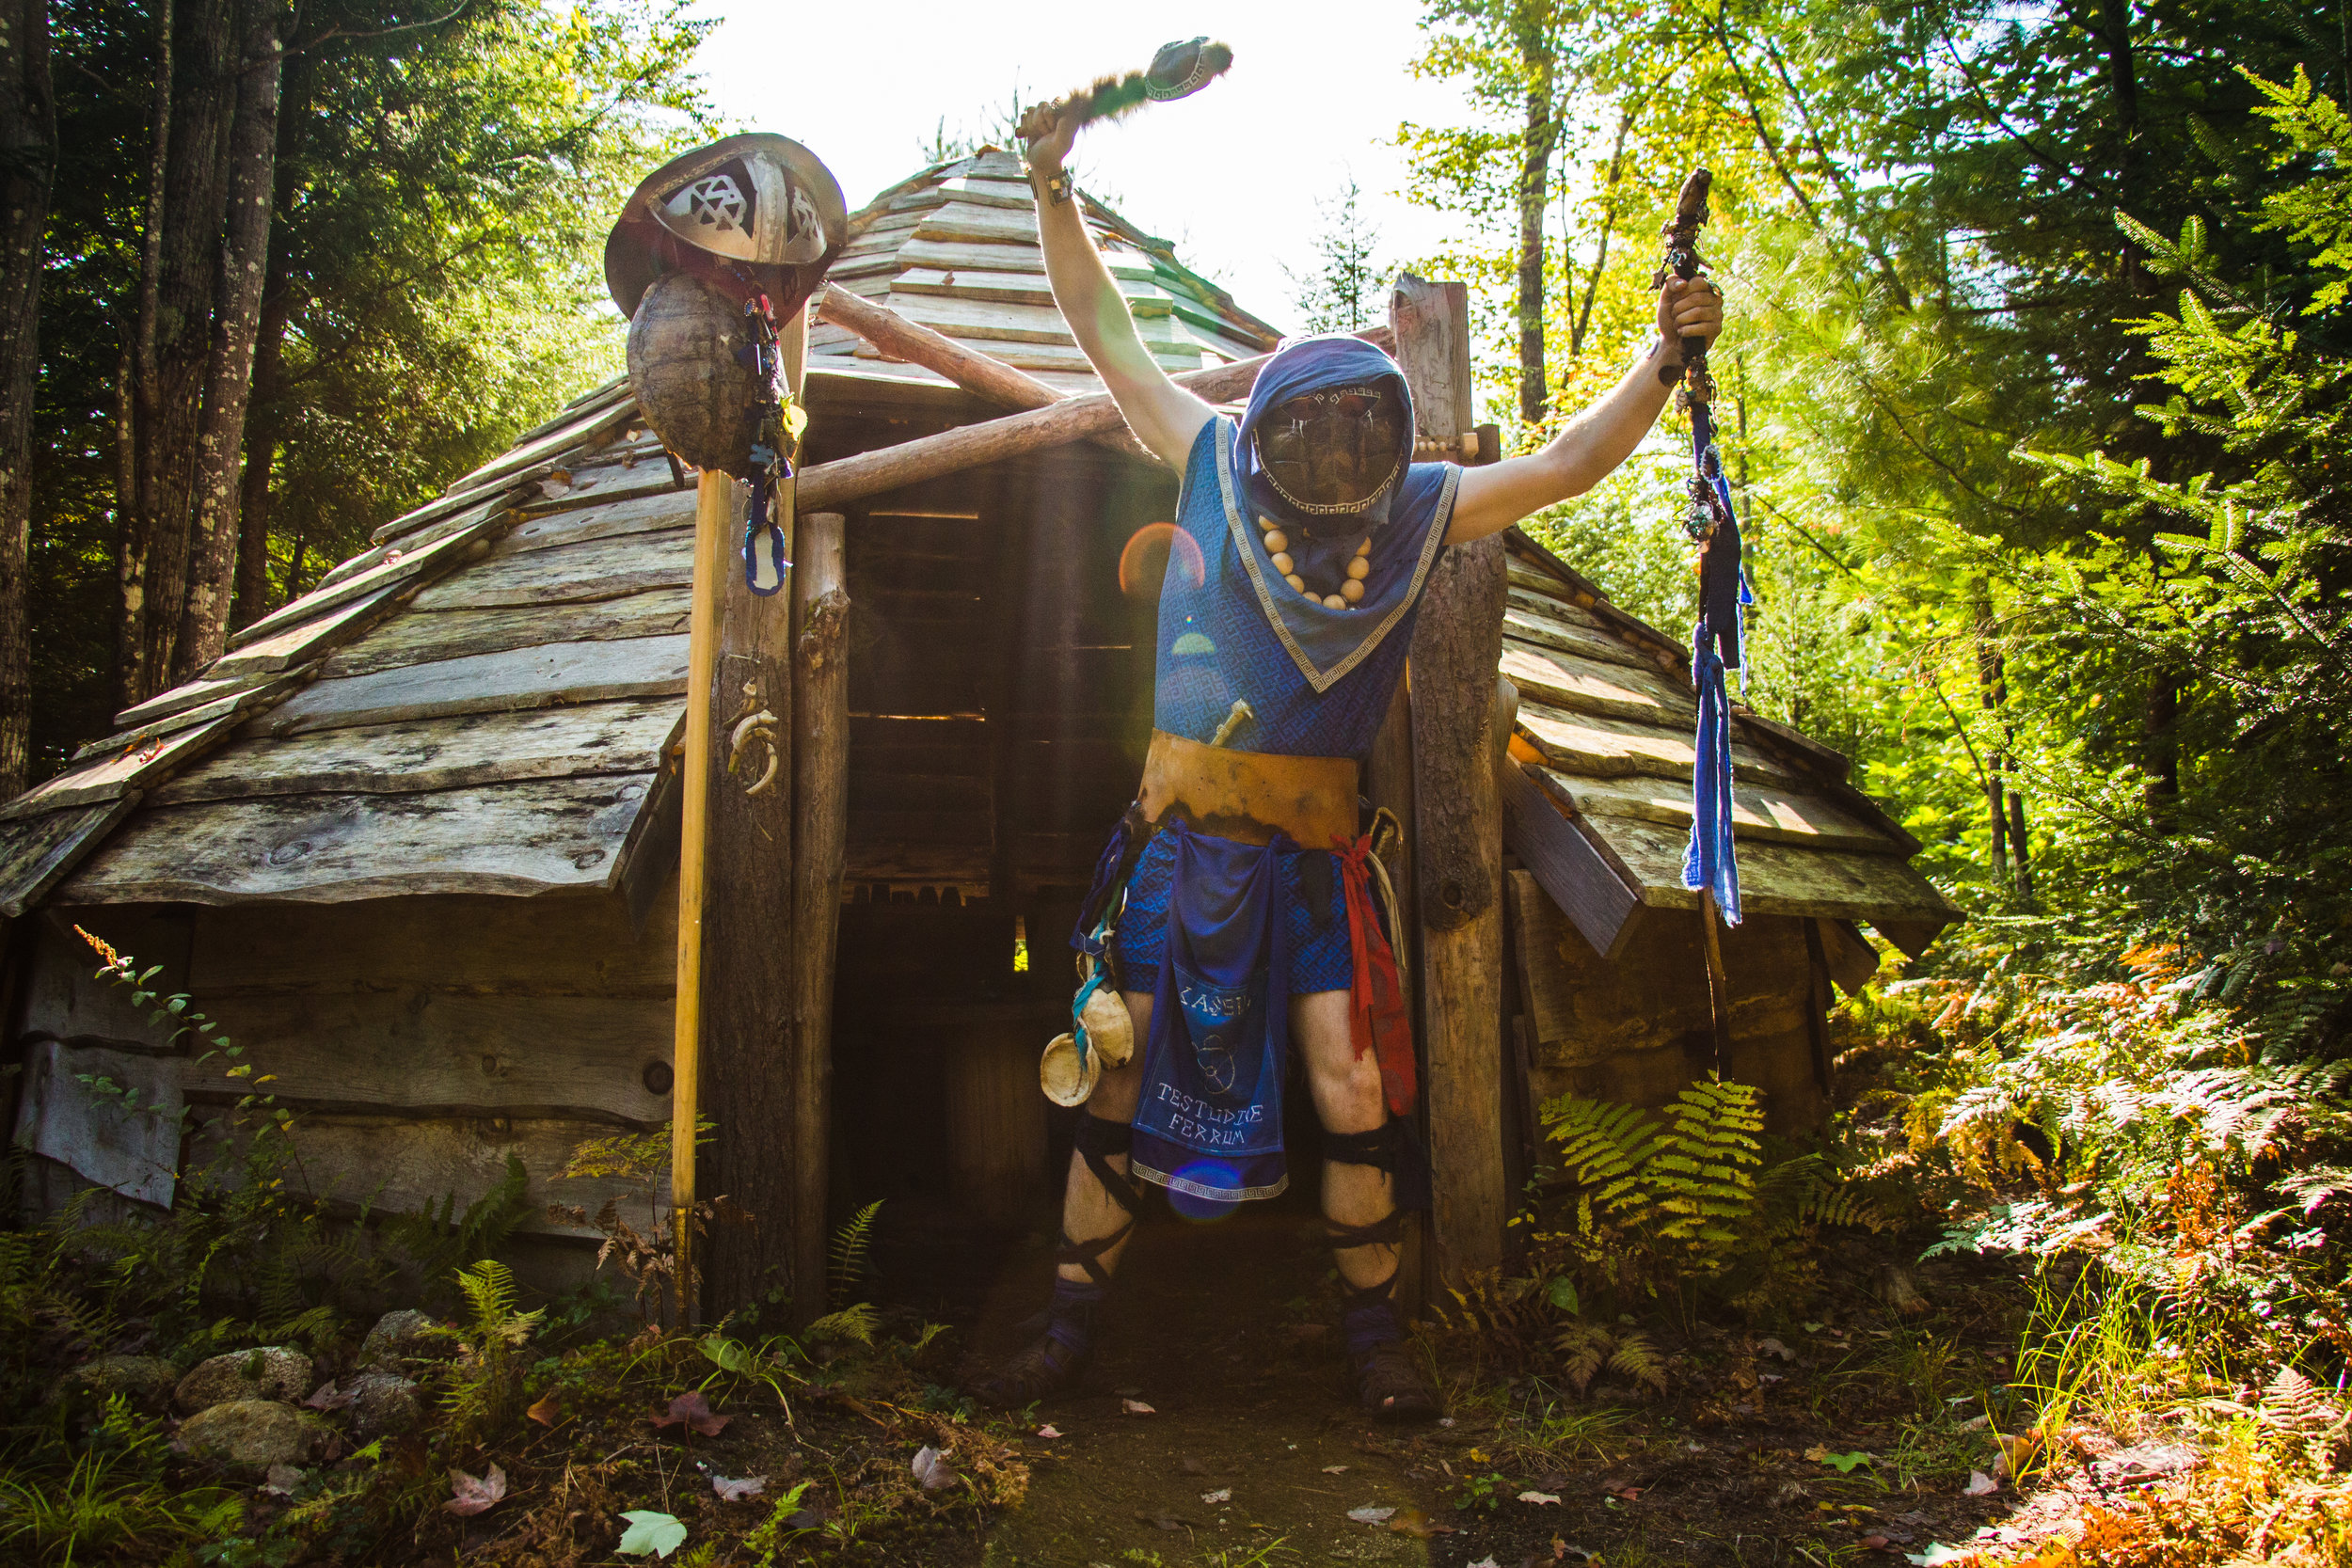 Kevin Dillard shows off his persona Caseus the Iron Turtle and all of the items he has made and collected for his kit. The shaman shack, Burgundar, September 18, 2017.